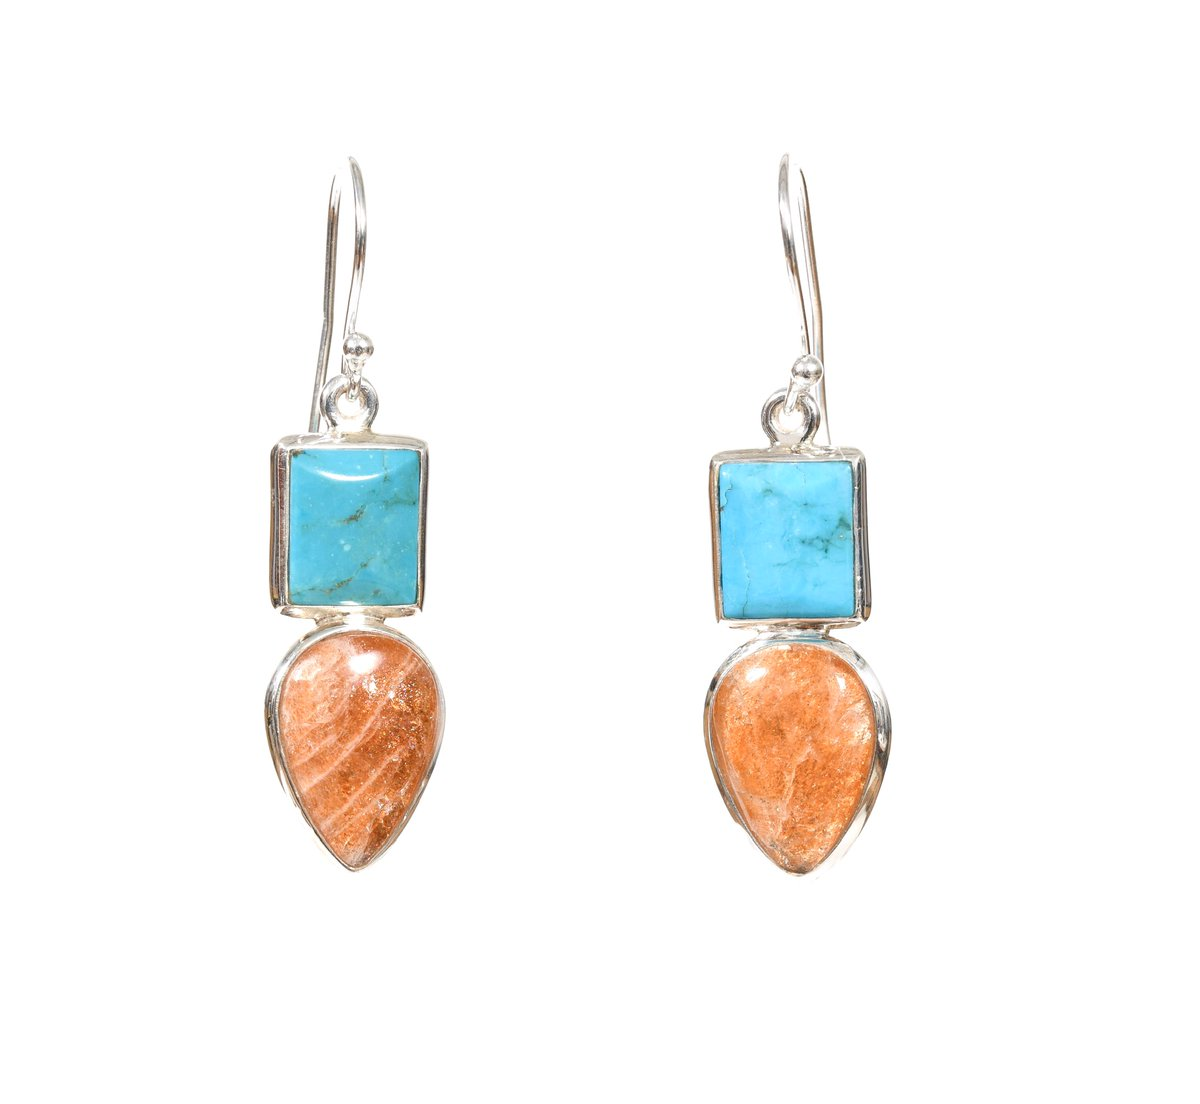 Enliven your spirit and support a #smallbiz with #earrings that'll turn heads. 20% off now through the end of the day.  #onlineshopping #sale  #handmade #jewellery #earrings #accessories #handmadejewelry  #instajewelry #beautiful #luxury #jewelrygram  http://ow.ly/t0y550z611wpic.twitter.com/4f3uZ7UczO